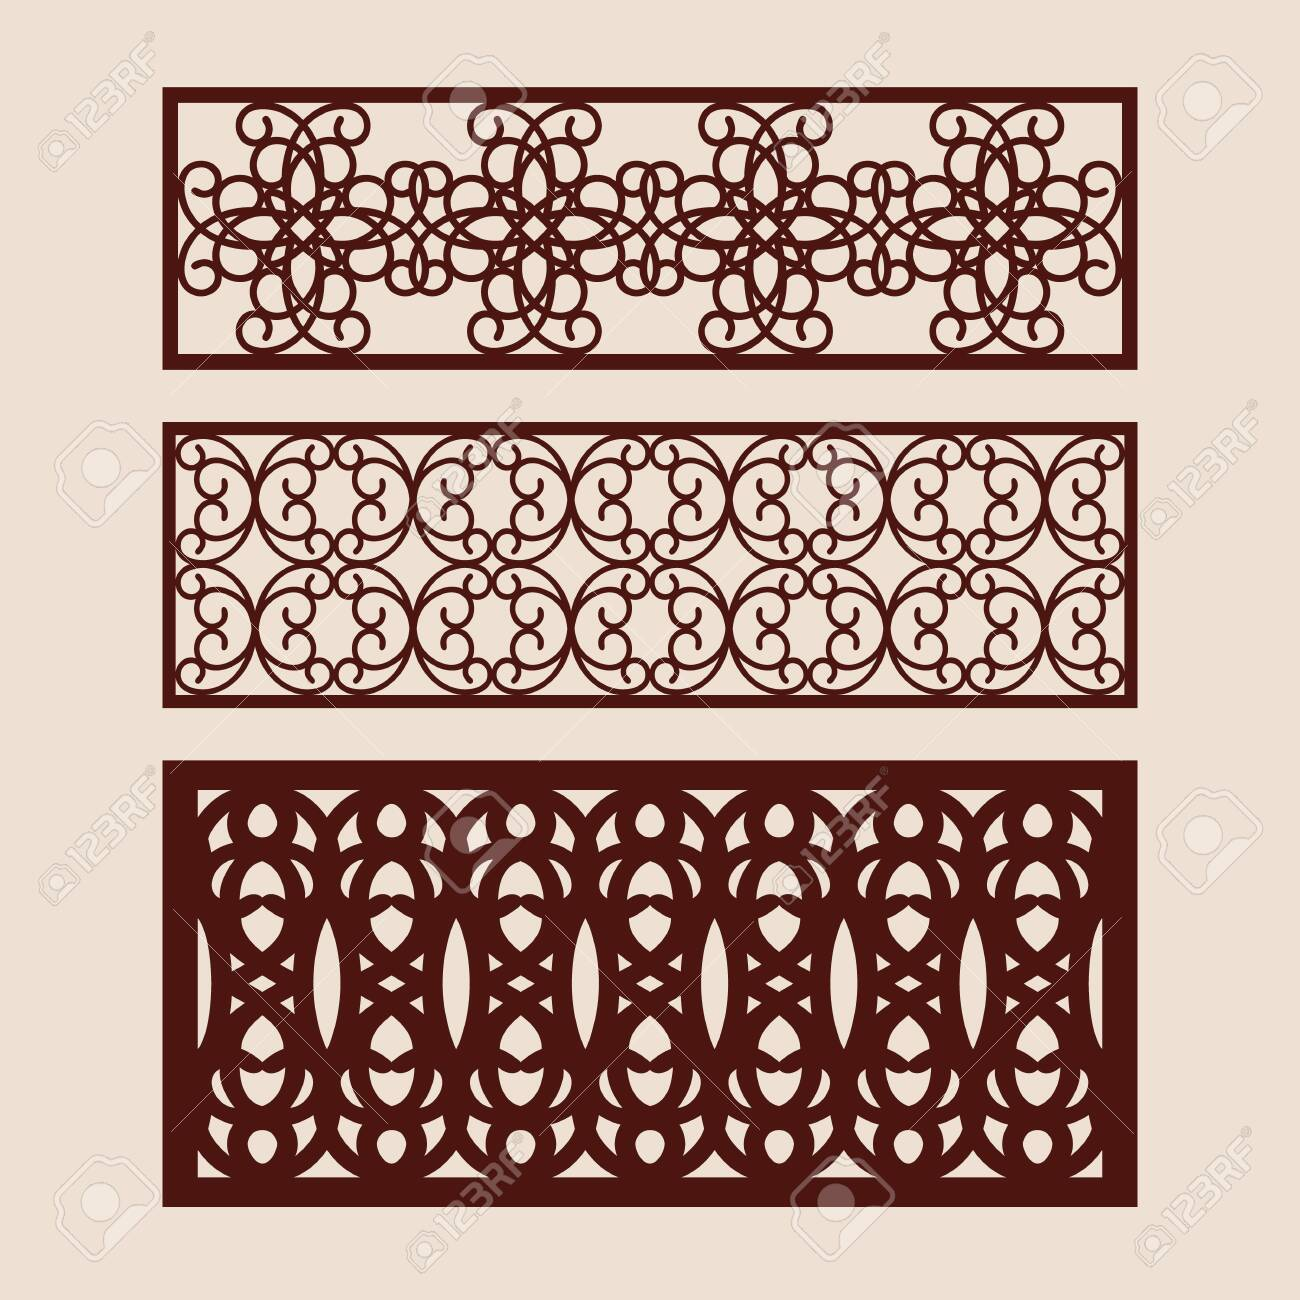 Set floral geometric ornaments. Collection of decorative panel templates. The drawing is suitable for cutting paper, printing, laser cutting or engraving wood, metal. Manufacturer of stencils. Vector - 143967946